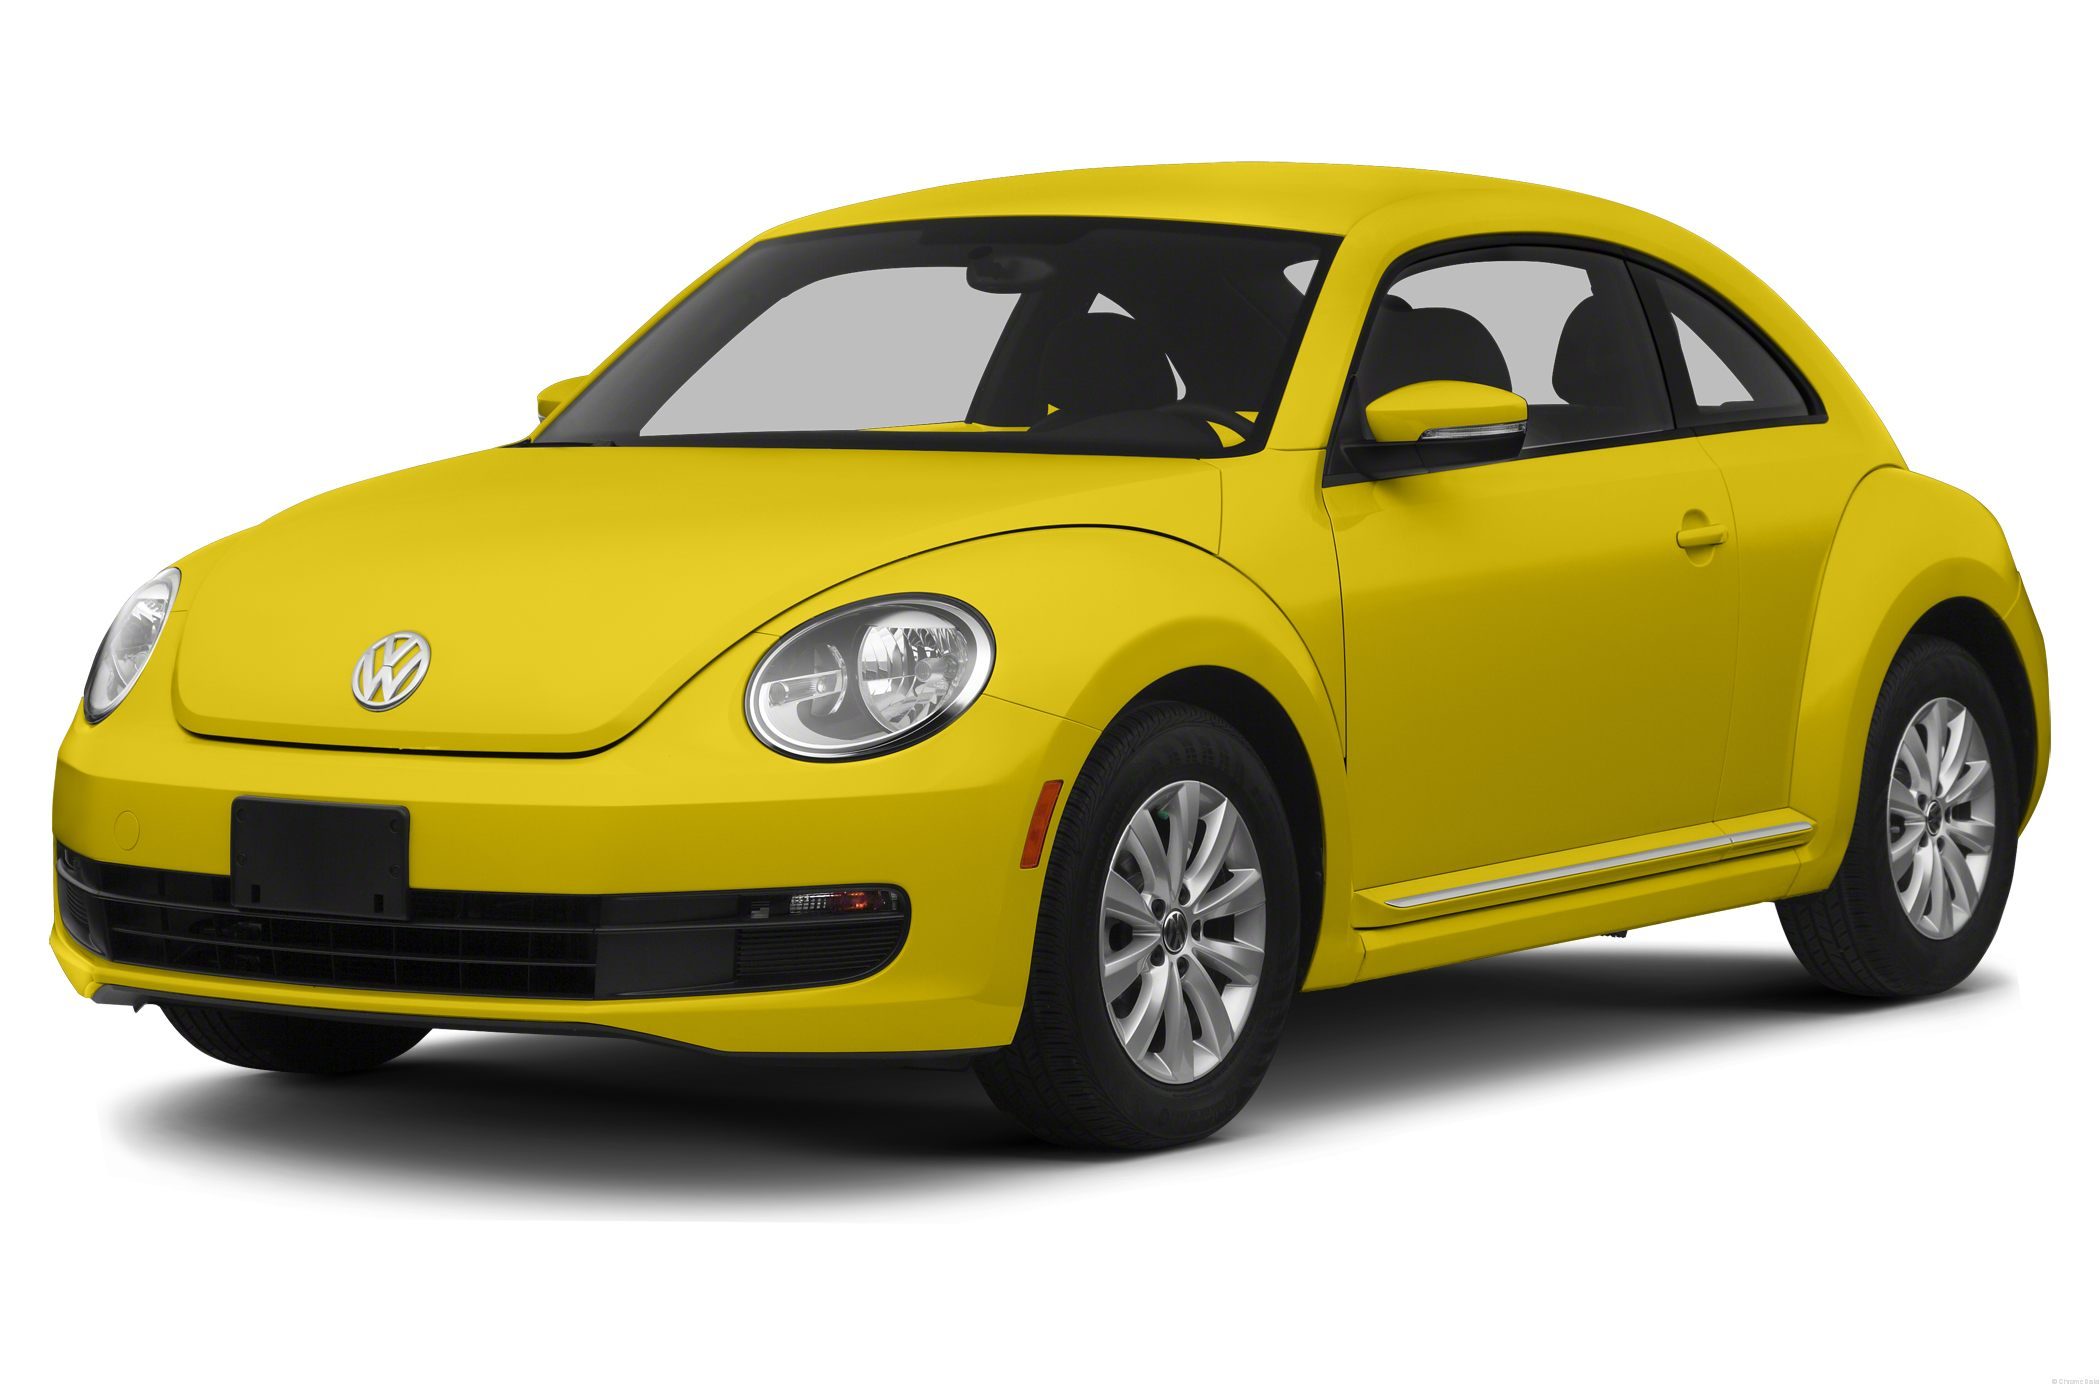 Volkswagen Beetle Hatchback HD Dekstop Wallpaper HD Desktop 2100x1386